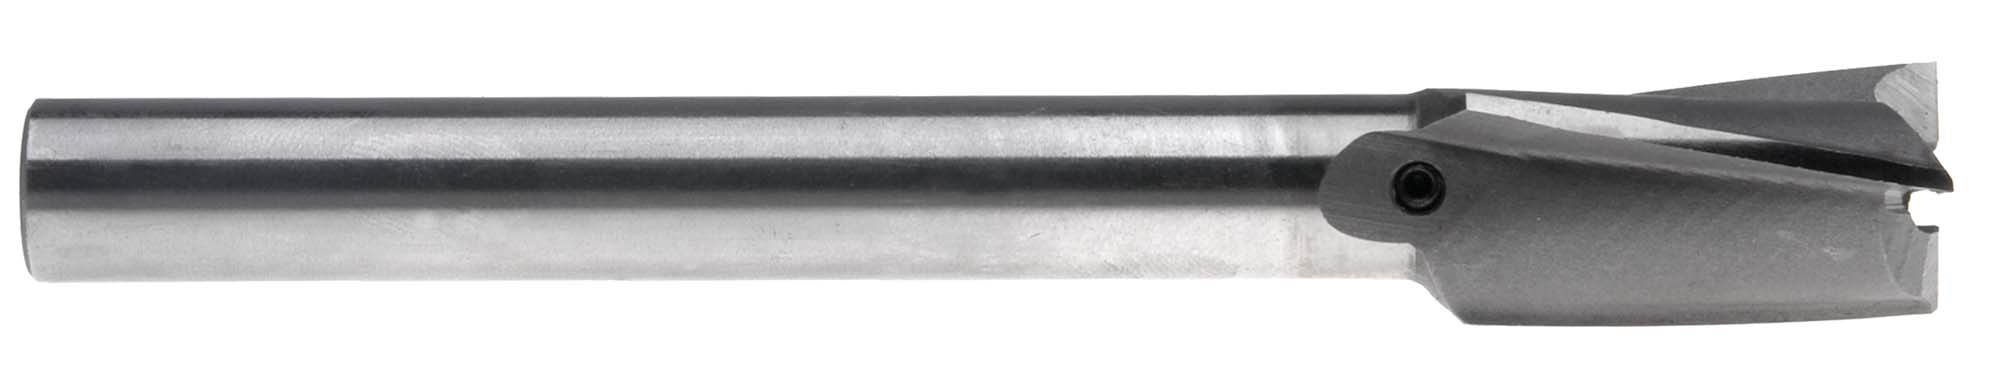 "1-11/16"" Straight Shank Counterbore, Interchangeable Pilot Type, High Speed Steel"